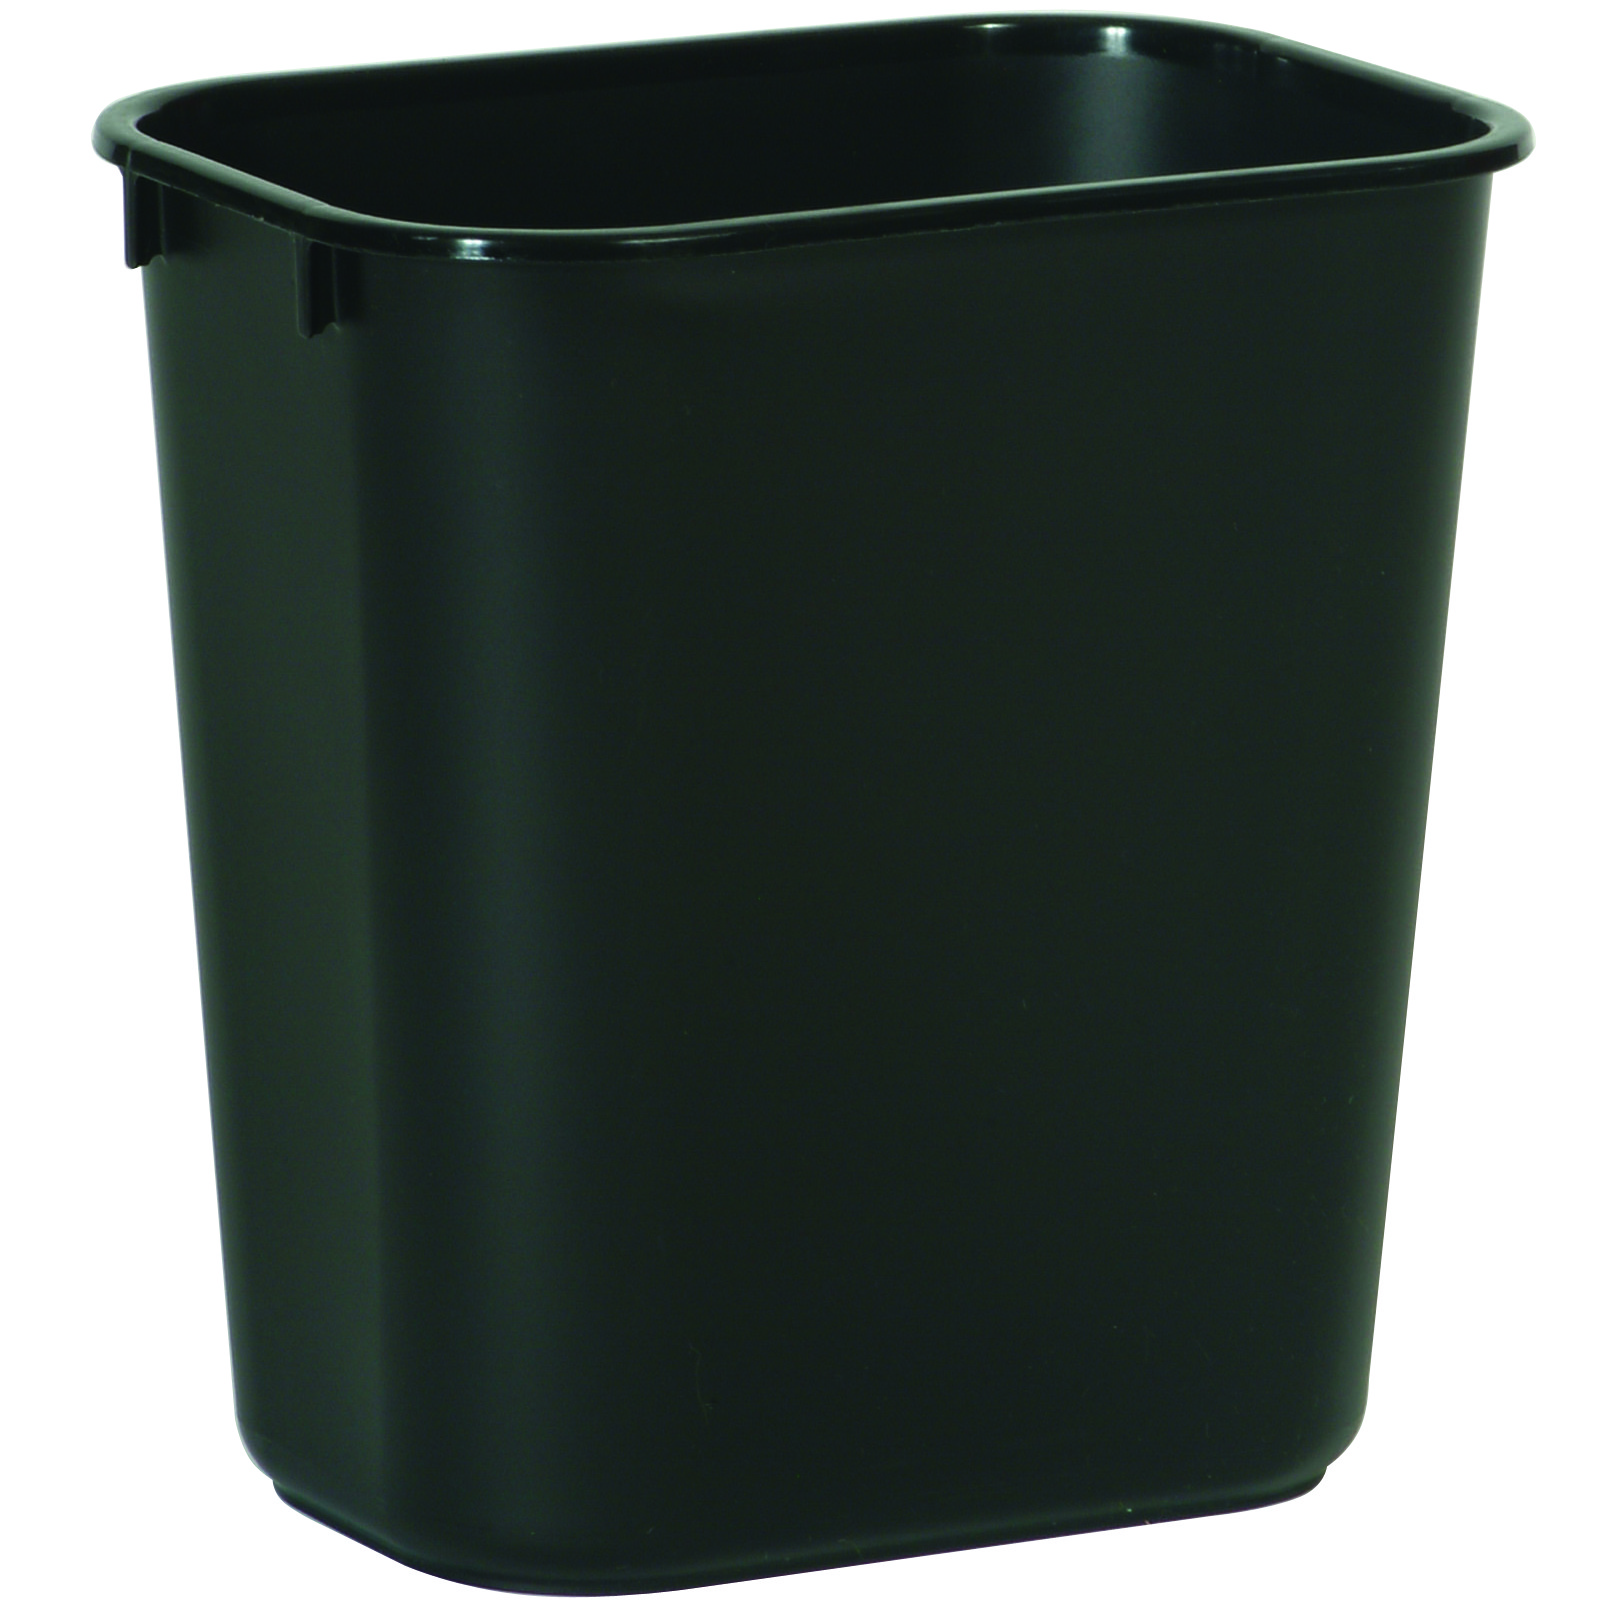 Small Plastic Trash Can 12 9 Liter Rubbermaid Small Wastebasket Trashcans Warehouse